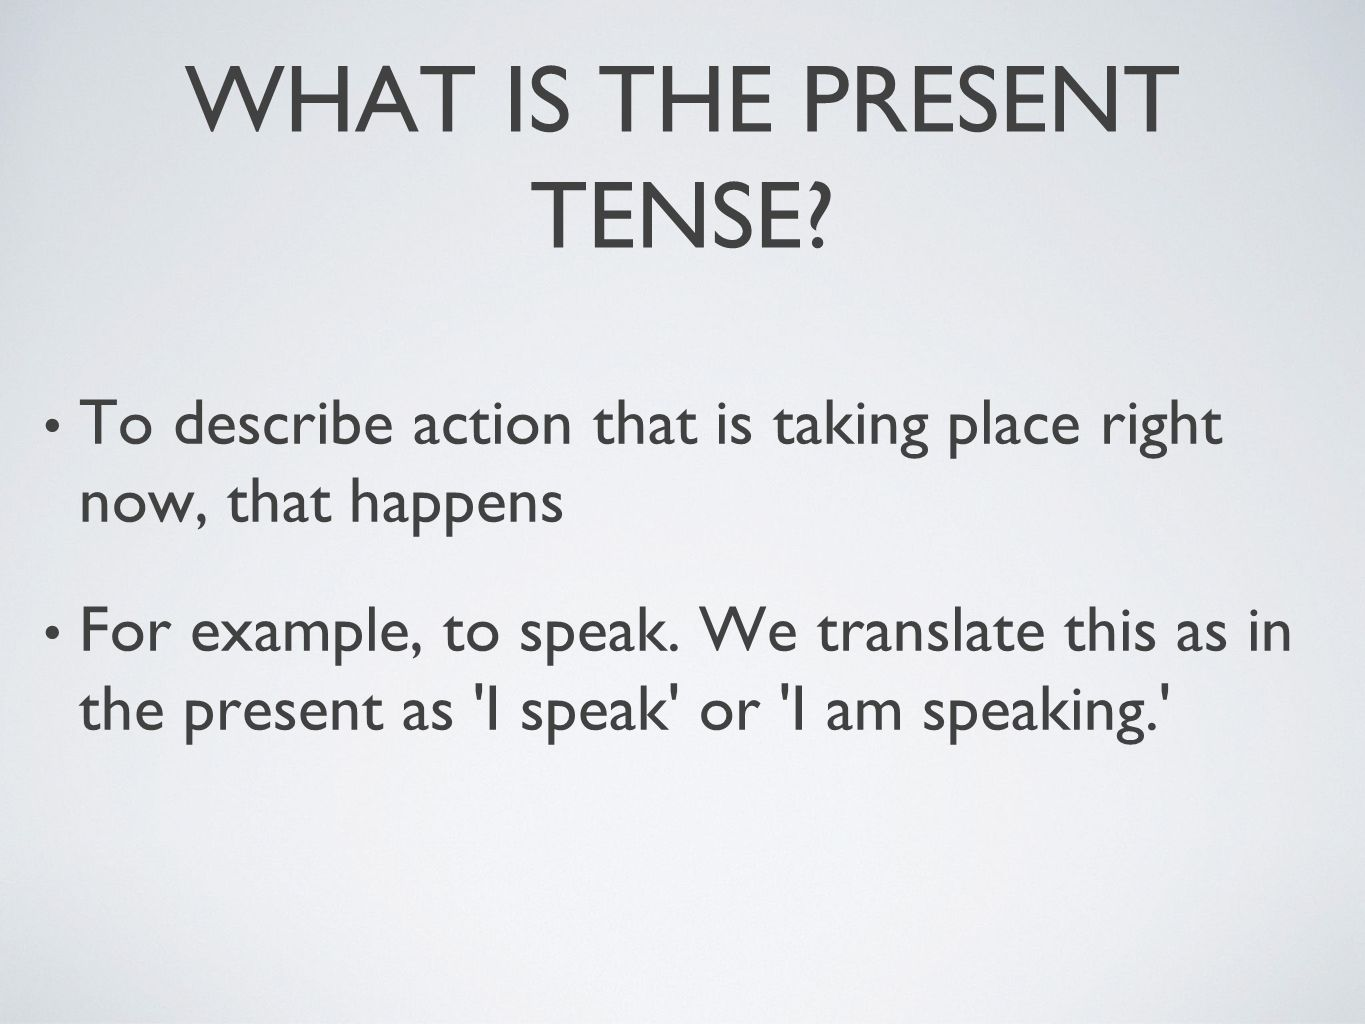 WHAT IS THE PRESENT TENSE